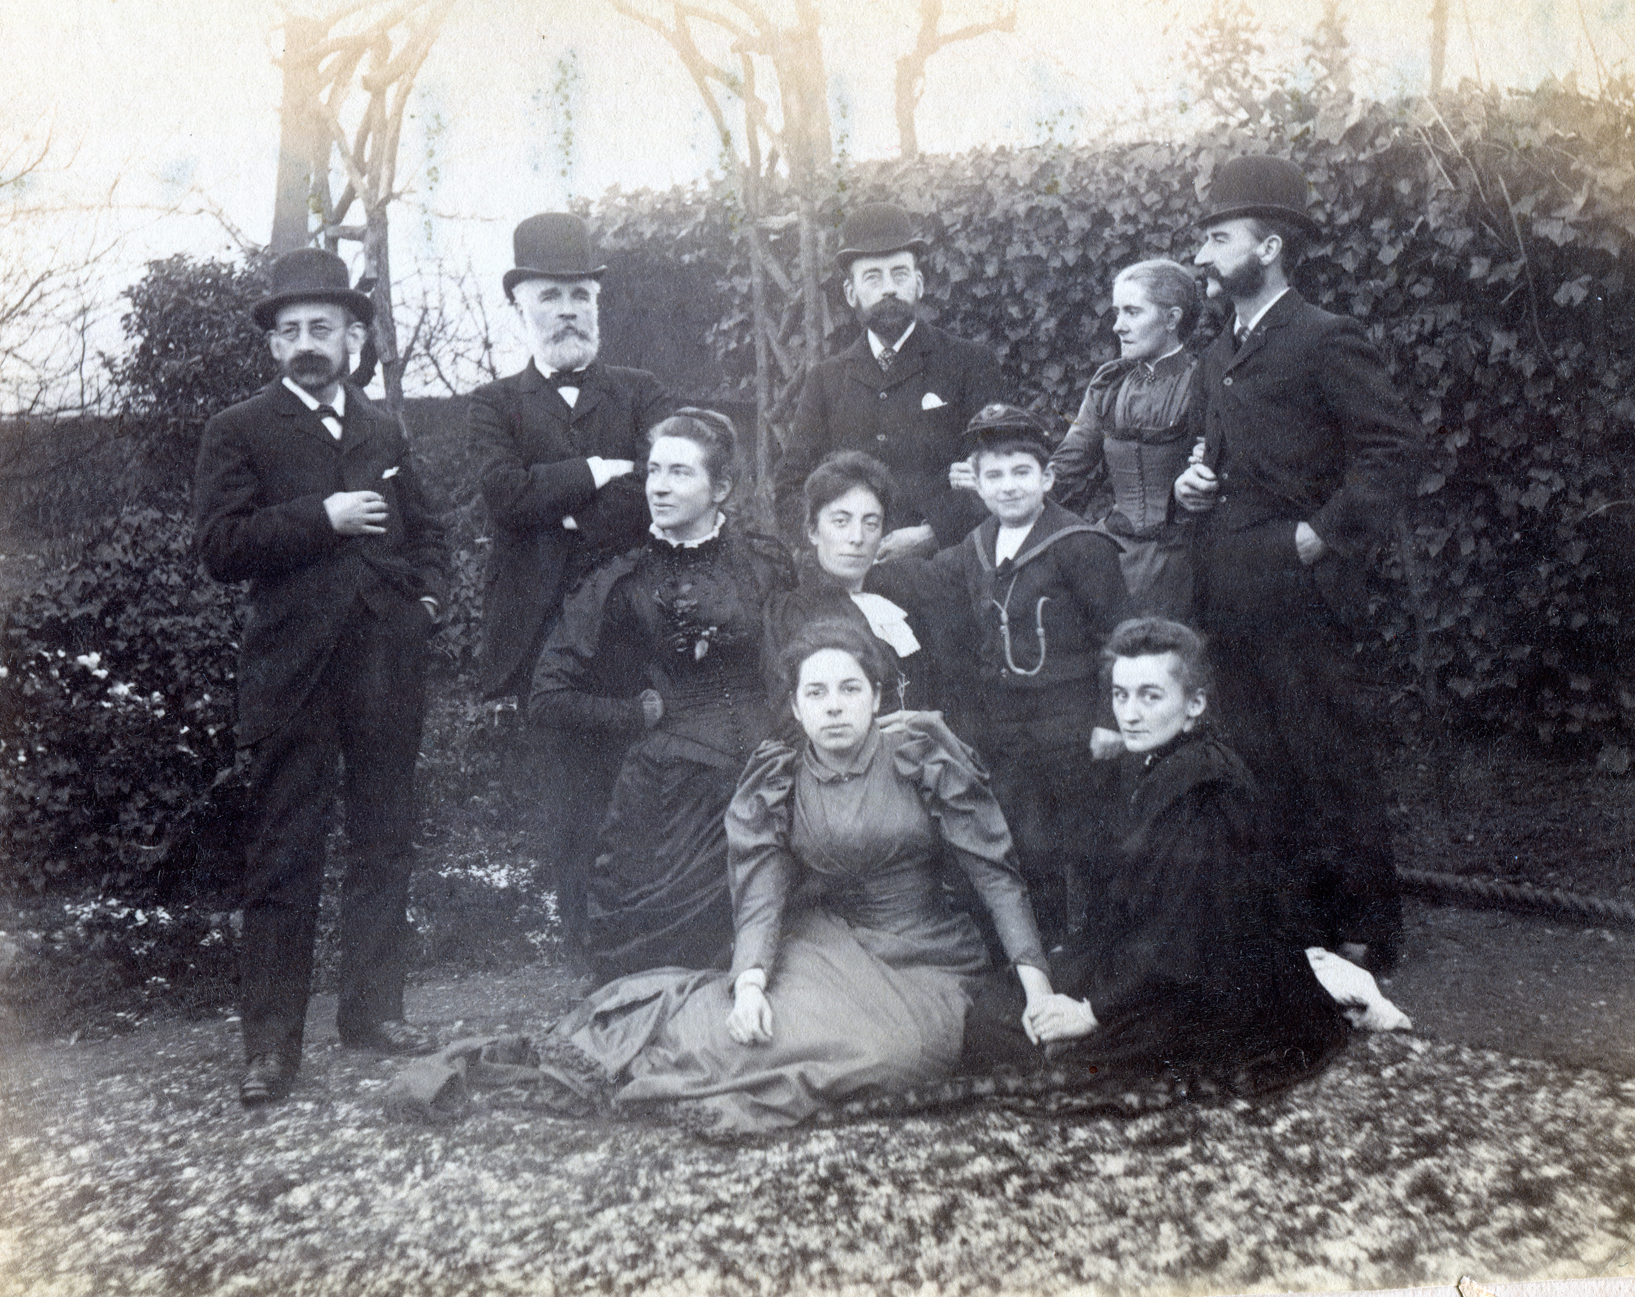 Left to right: (back) Fred Enock, Henry Dell (brother-in-law), Robinson Enock (brother), Emily Enock (Edwin's wife), Edwin Enock (brother), (middle) Jennie Enock (Fred's wife), Eleanor Enock (Robinson's wife), Roy Enock (Edwin and Emily's son) (front) Amy Dell (Henry Dell's daughter), Jane Enock (Fred's nephew, Guy Enock's wife) c1891